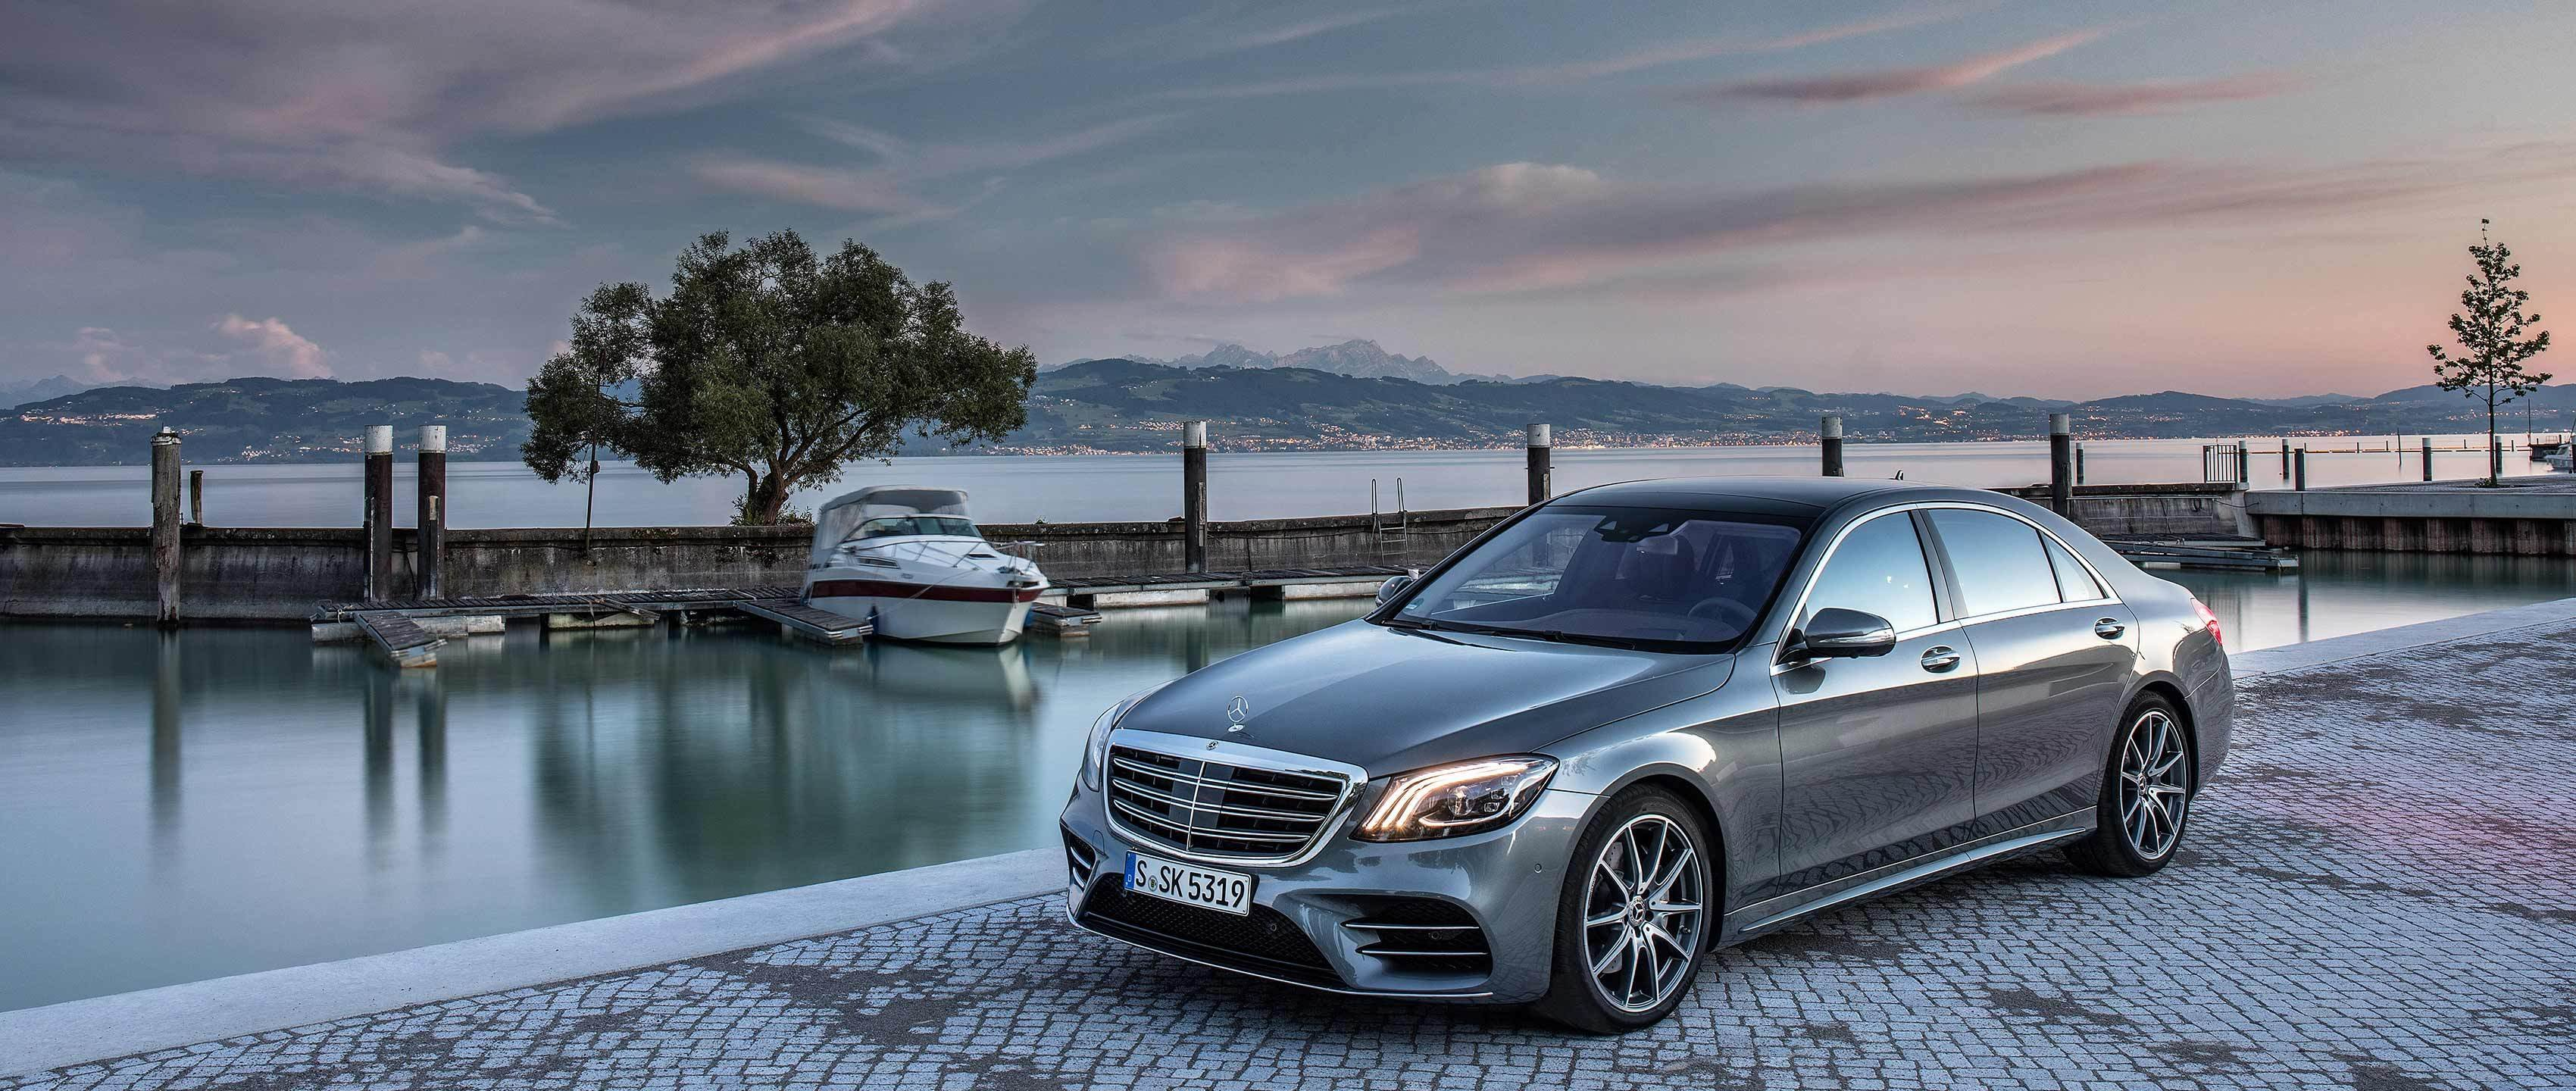 Latest Mercedes Benz S Class The Automotive Benchmark Free Download